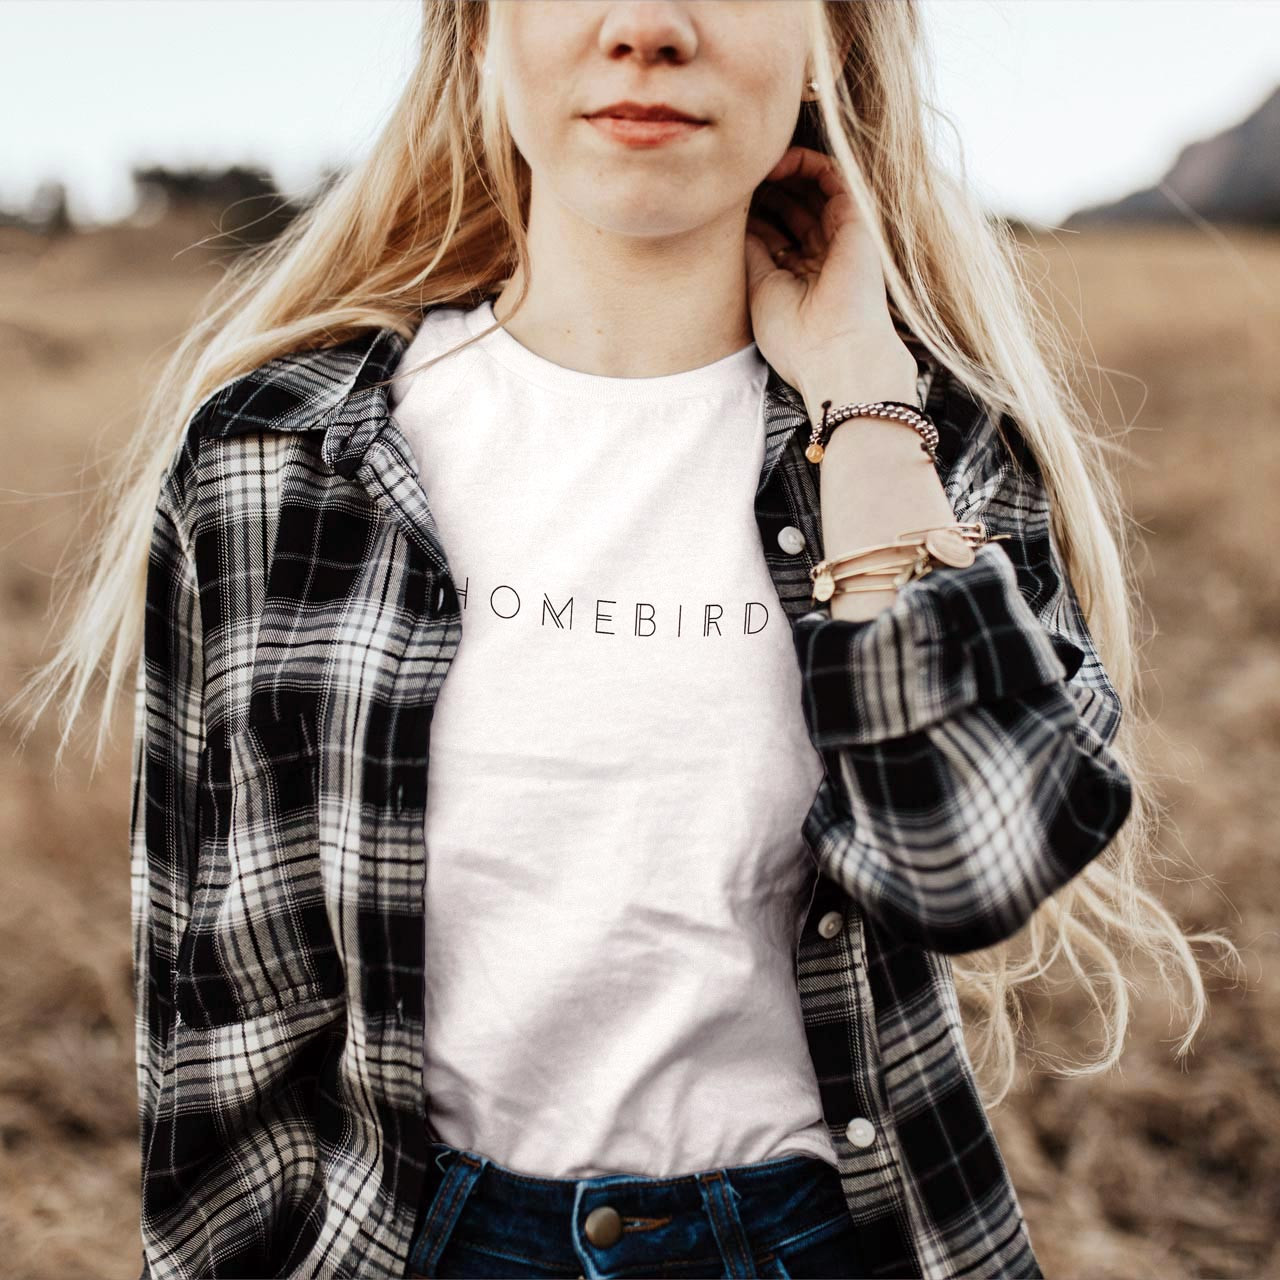 HOMEBIRD Cotton T-Shirt (Black on White) from The Printed Home